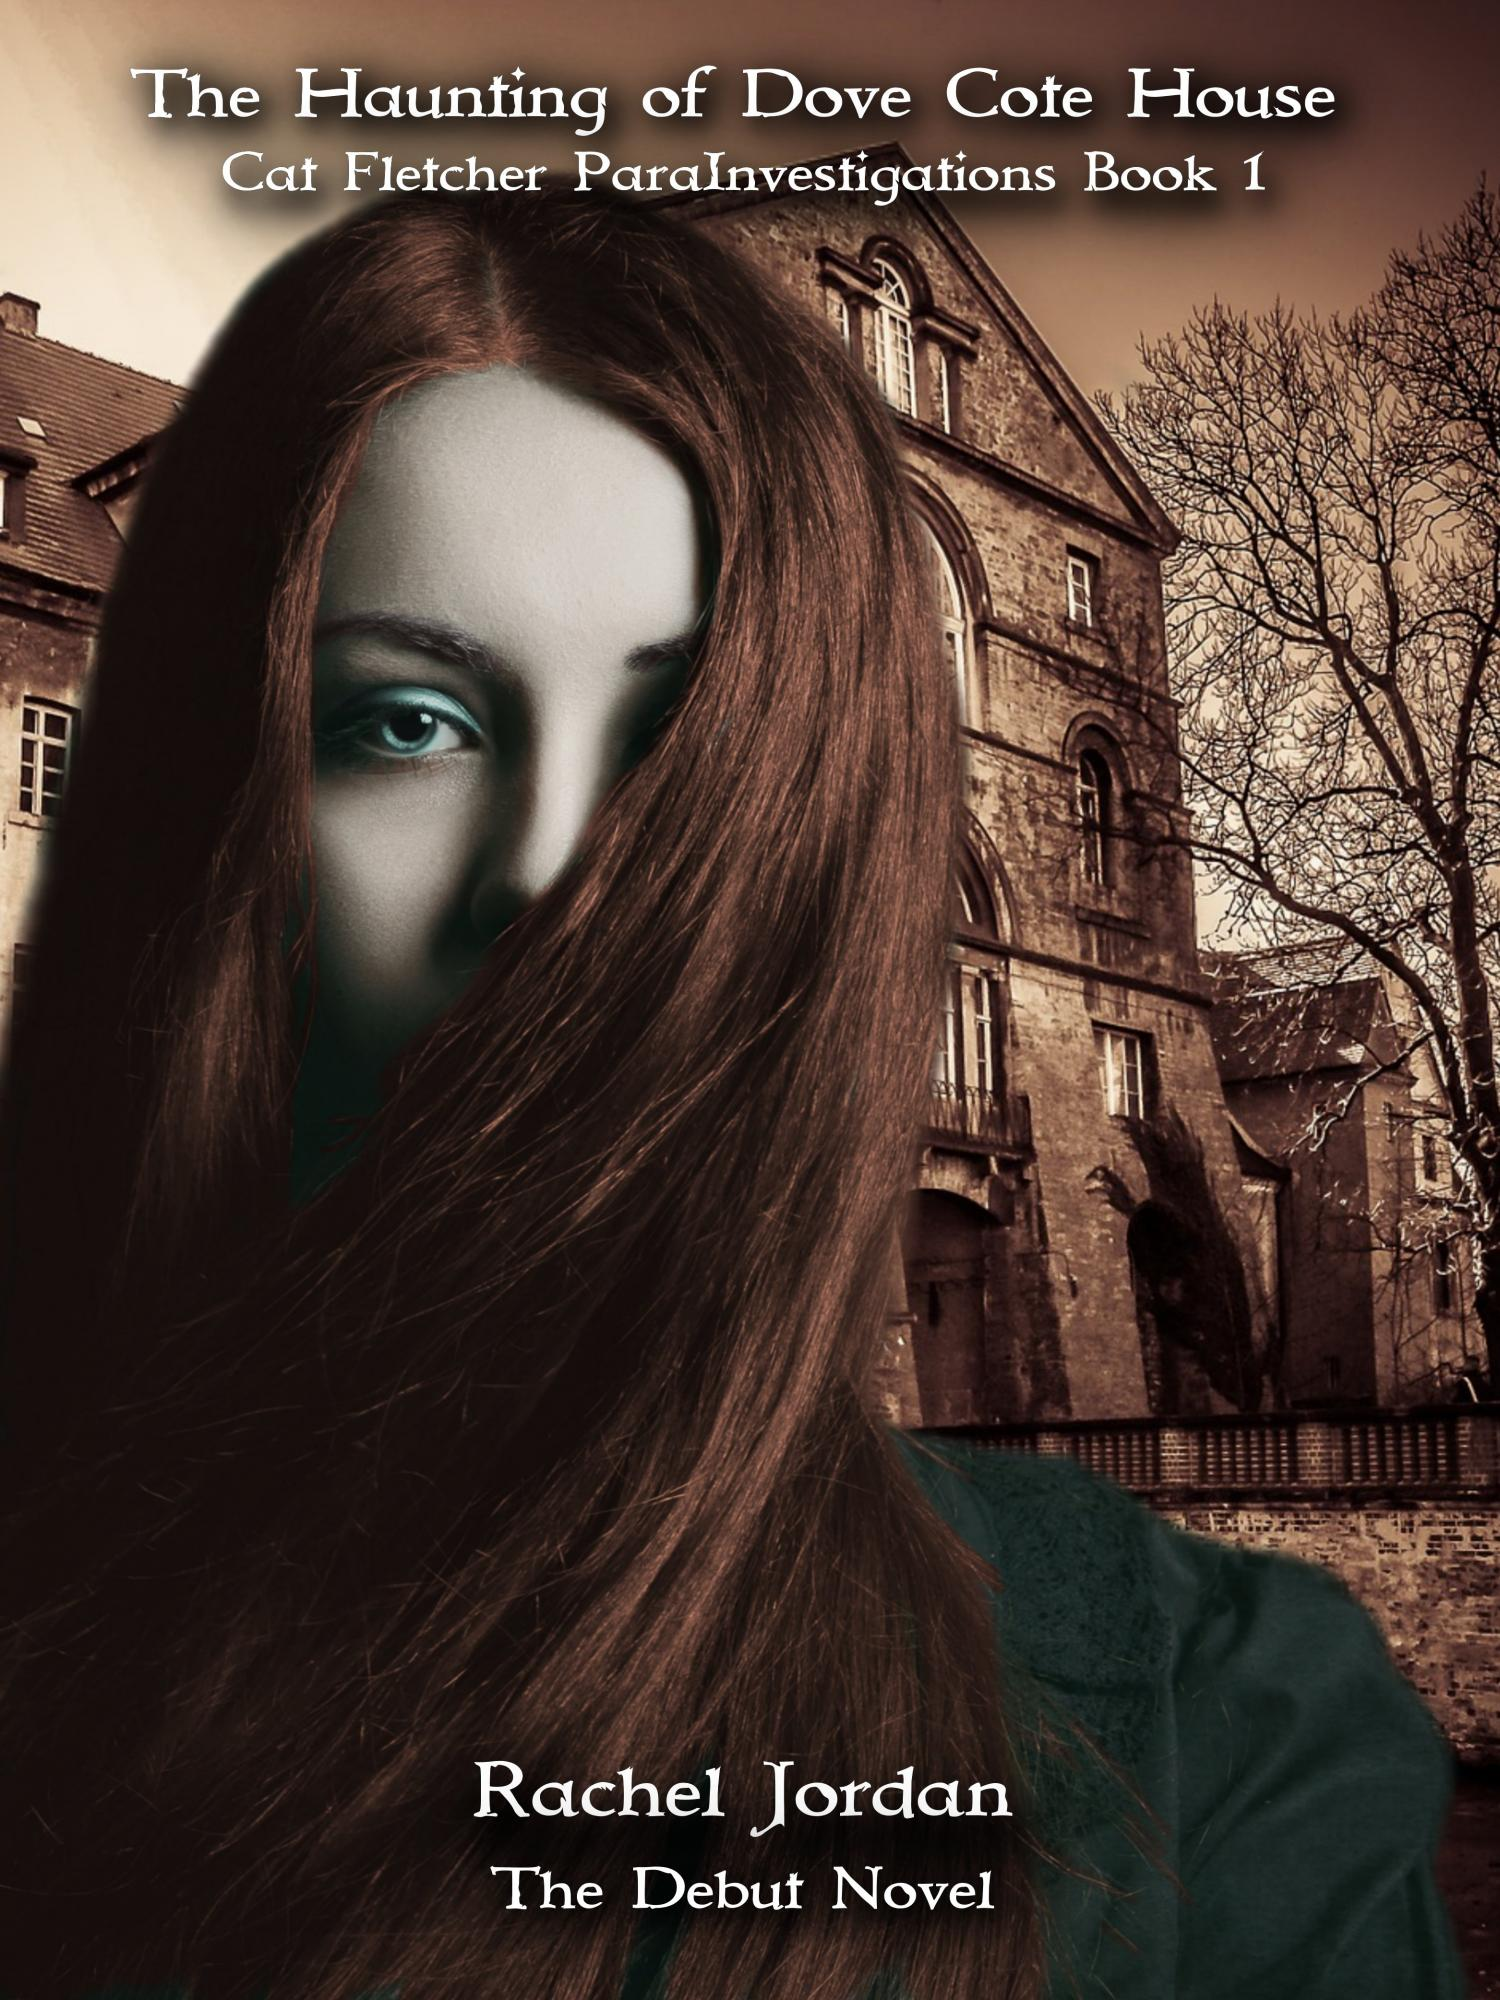 The Haunting of Dove Cote House Book Cover